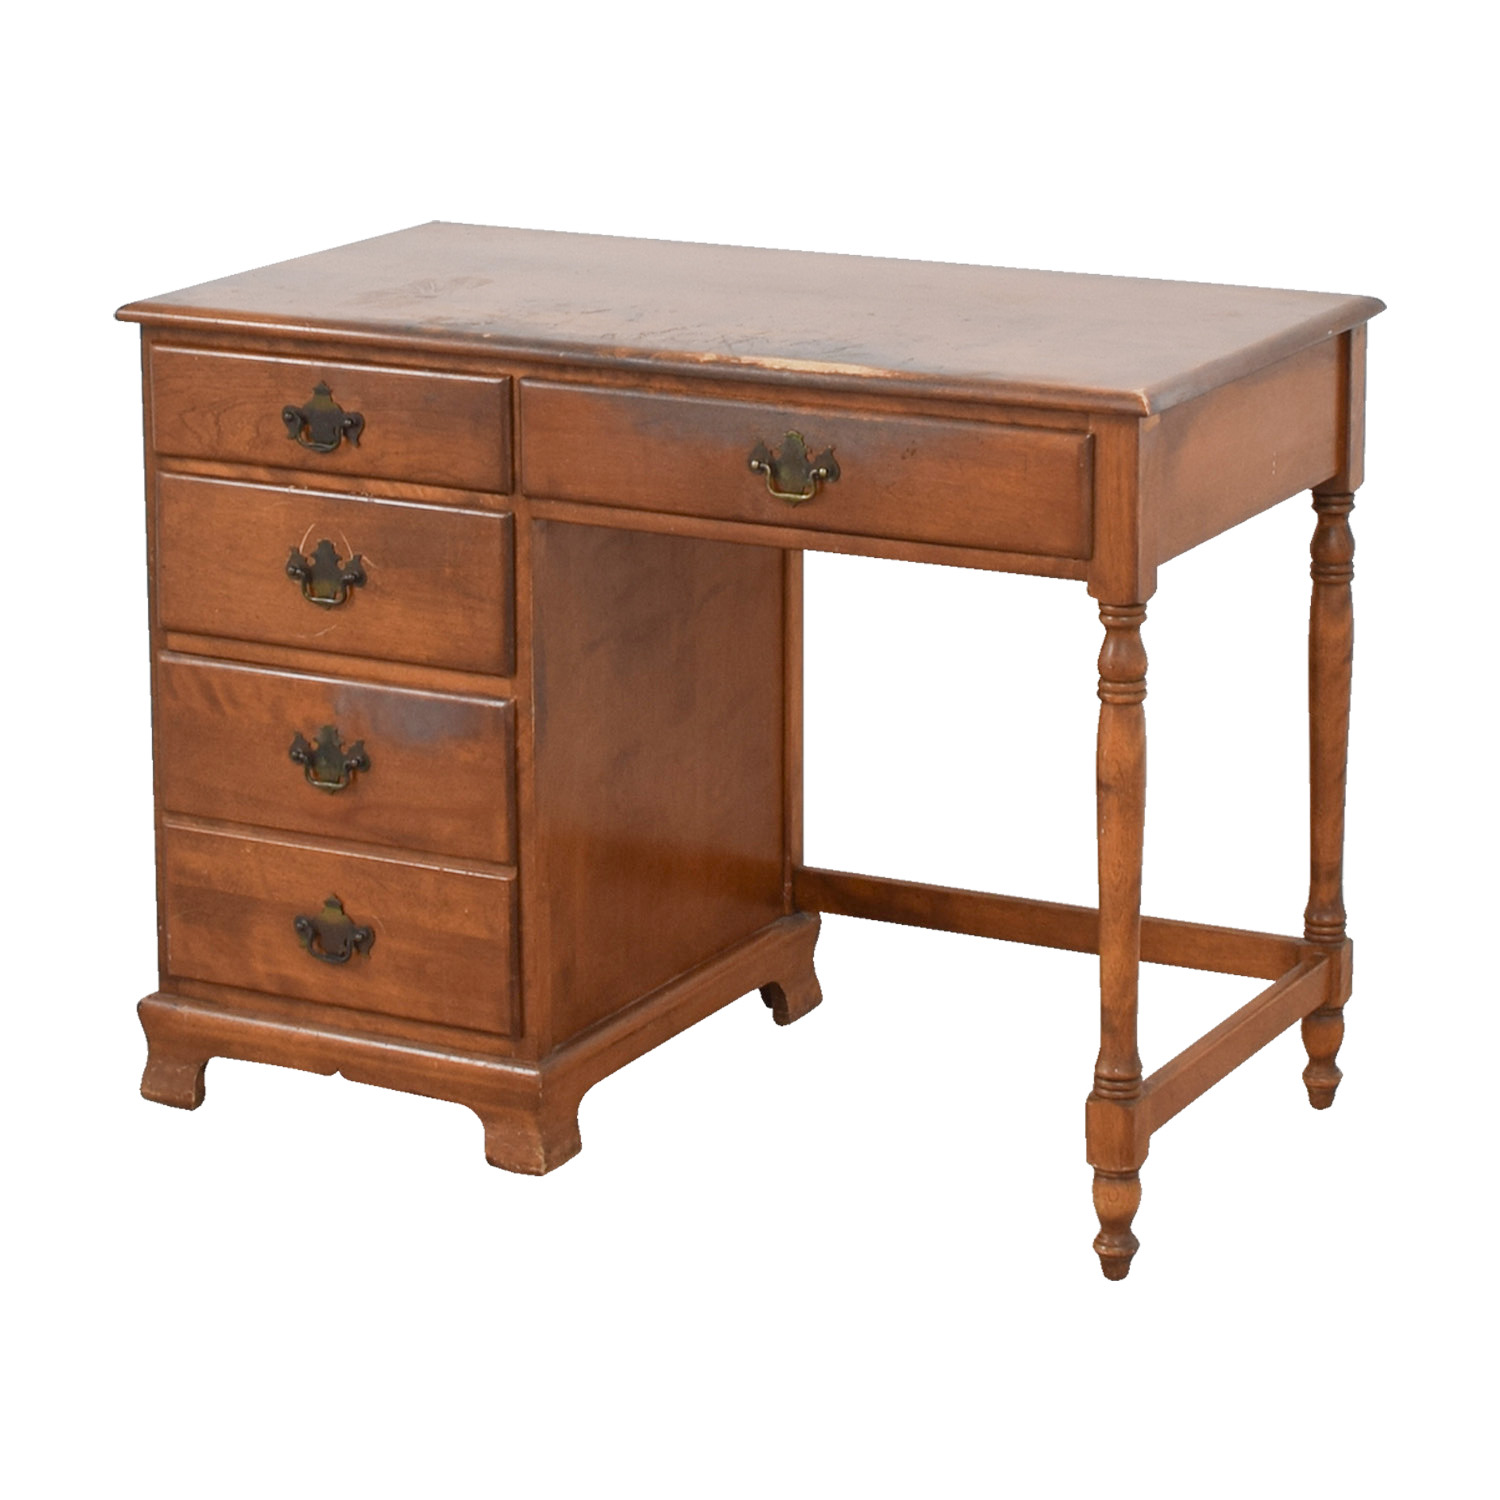 OFF Ethan Allen Ethan Allen Vintage Baumritter Maple Wood Desk - Desks for home office ethan allen